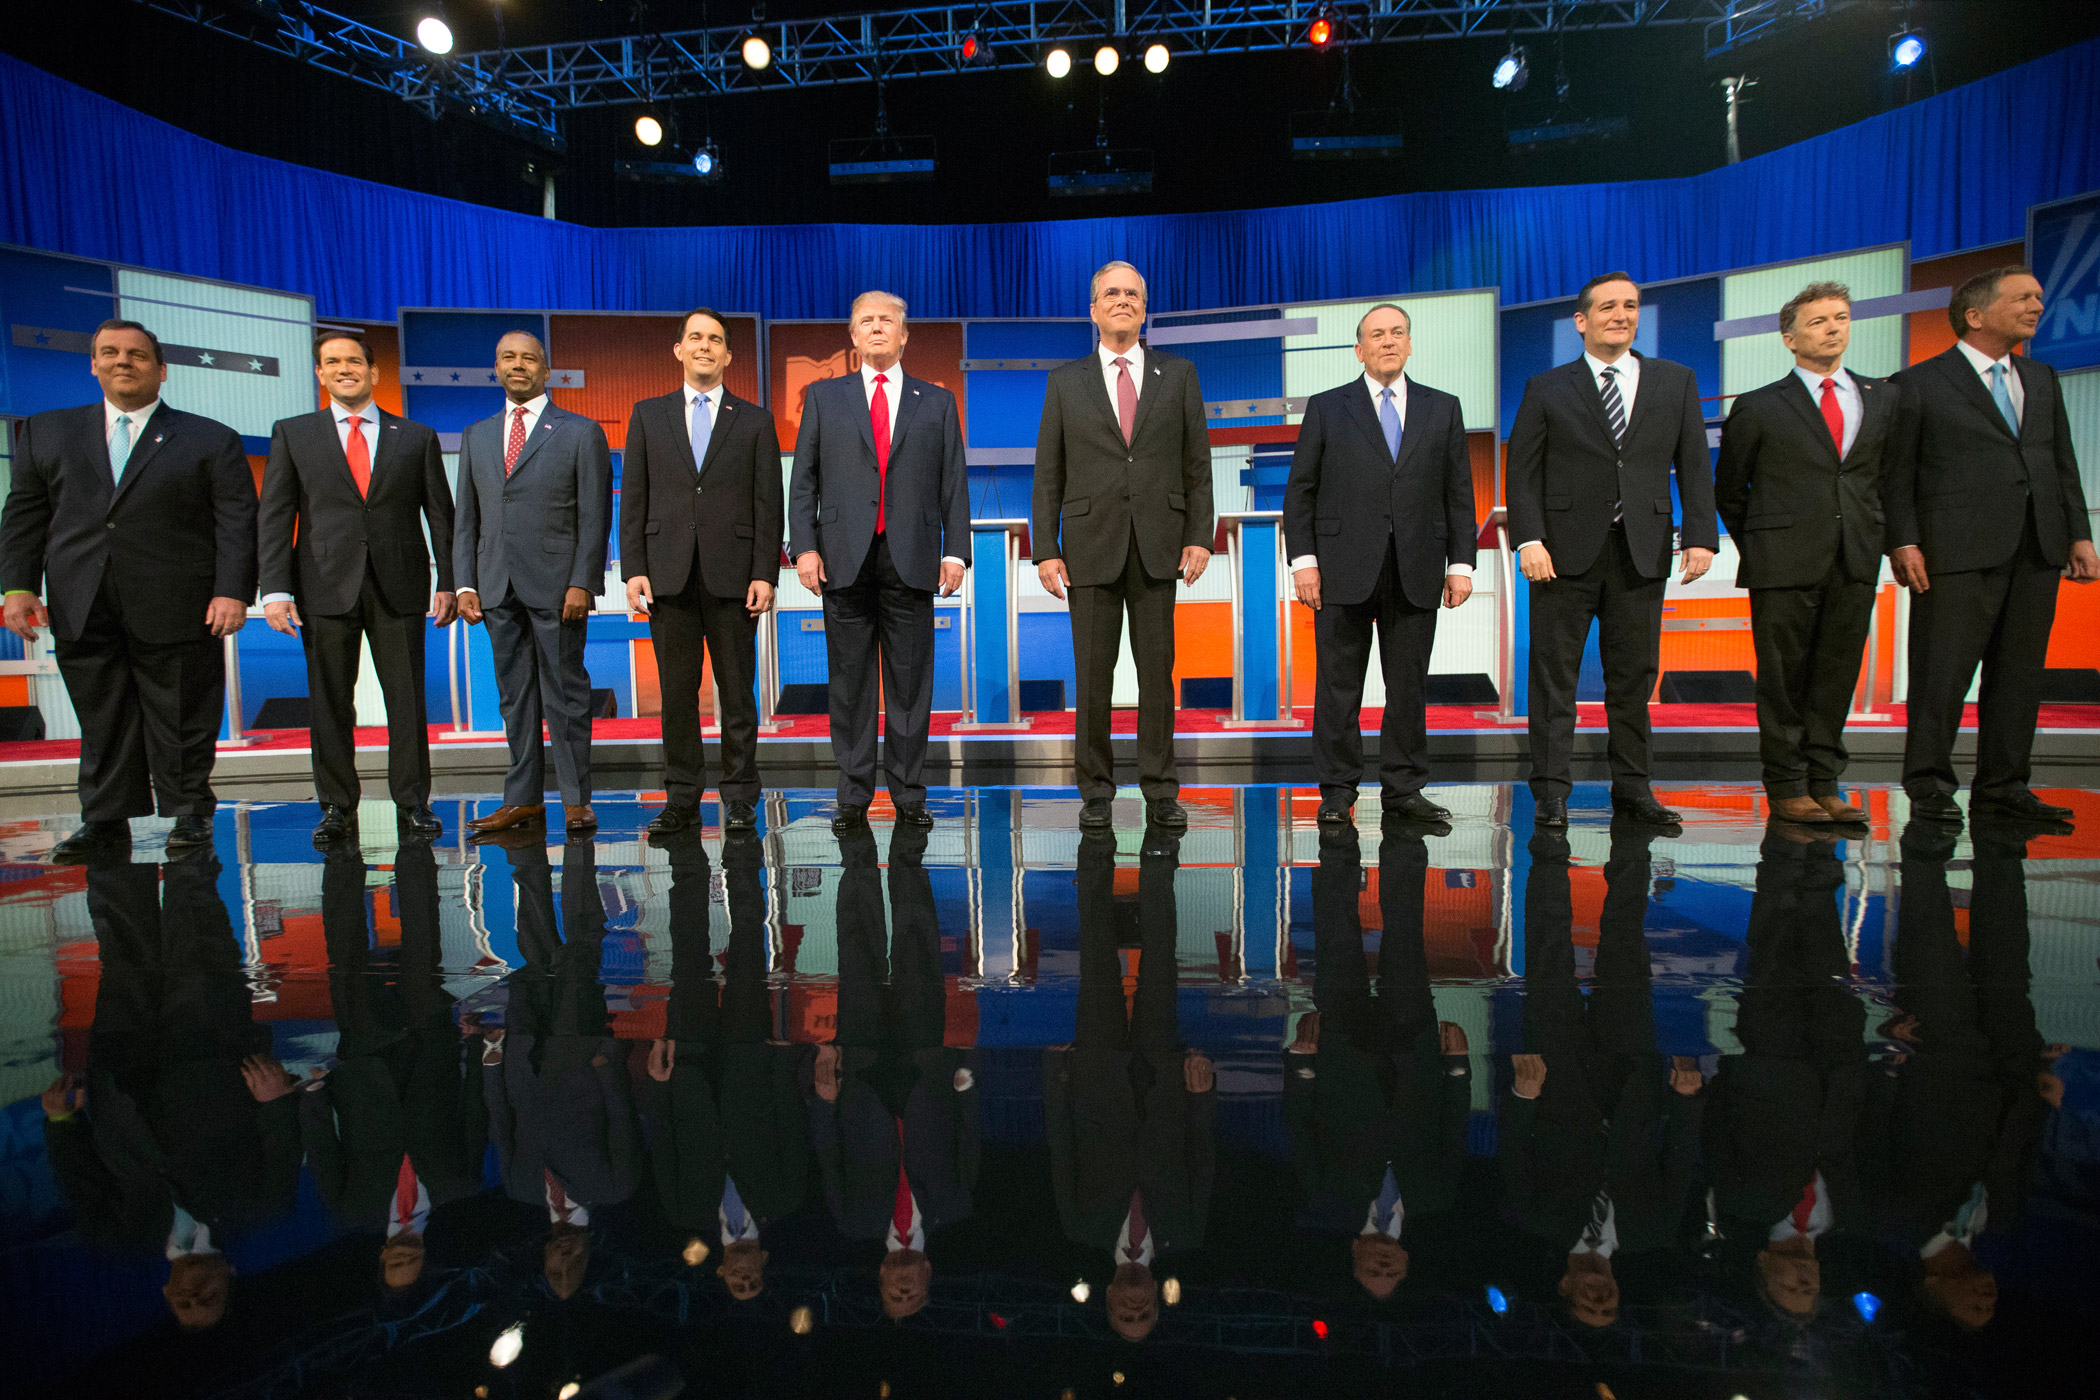 Republican presidential candidates from left, Chris Christie, Marco Rubio, Ben Carson, Scott Walker, Donald Trump, Jeb Bush, Mike Huckabee, Ted Cruz, Rand Paul, and John Kasich take the stage for the first Republican presidential debate on Aug. 6, 2015,  in Cleveland.